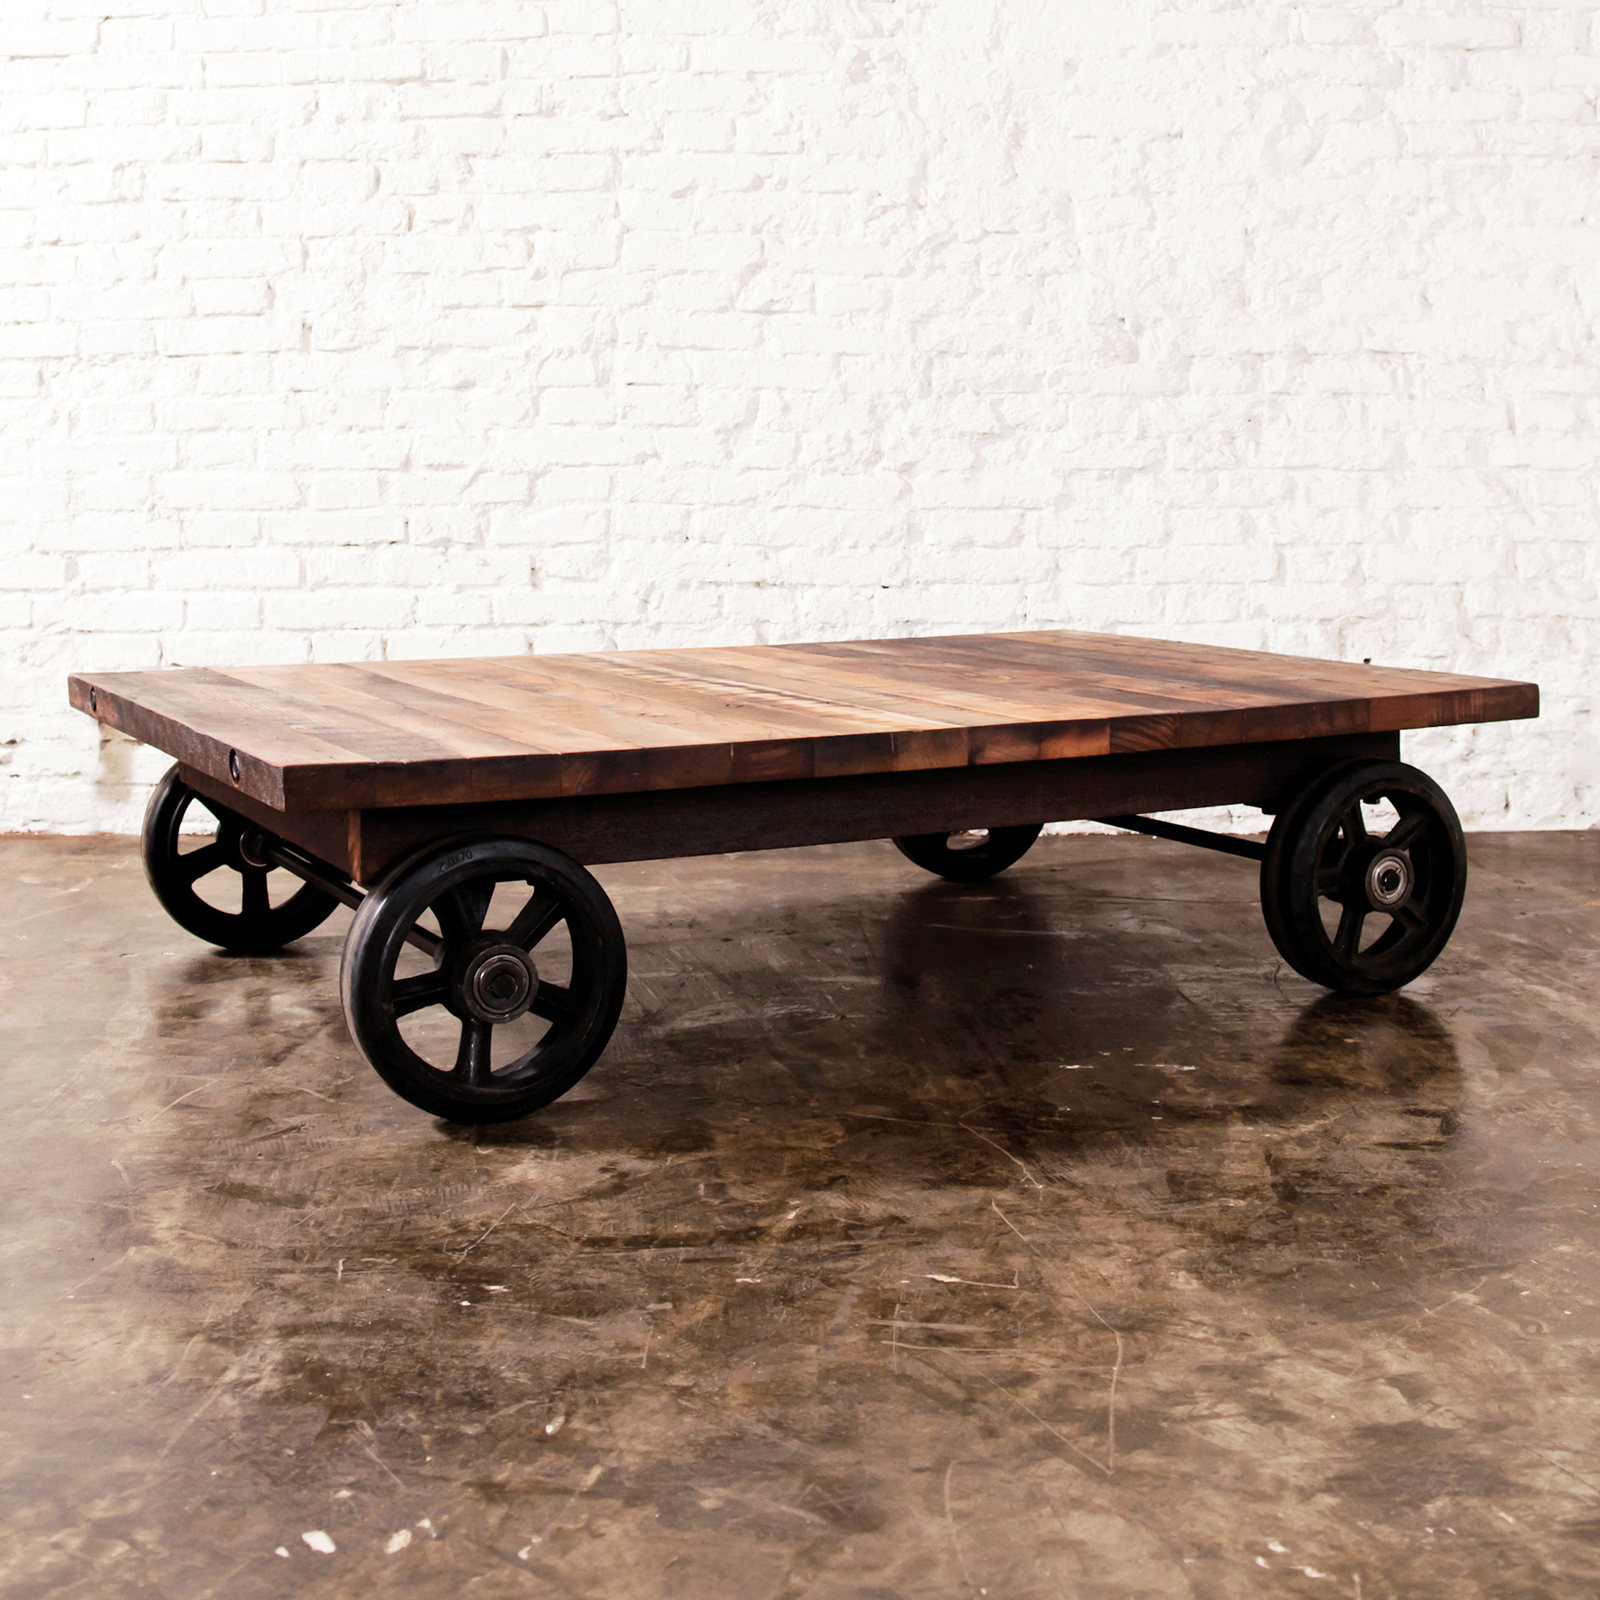 Working Project Verna Diy rail cart coffee table